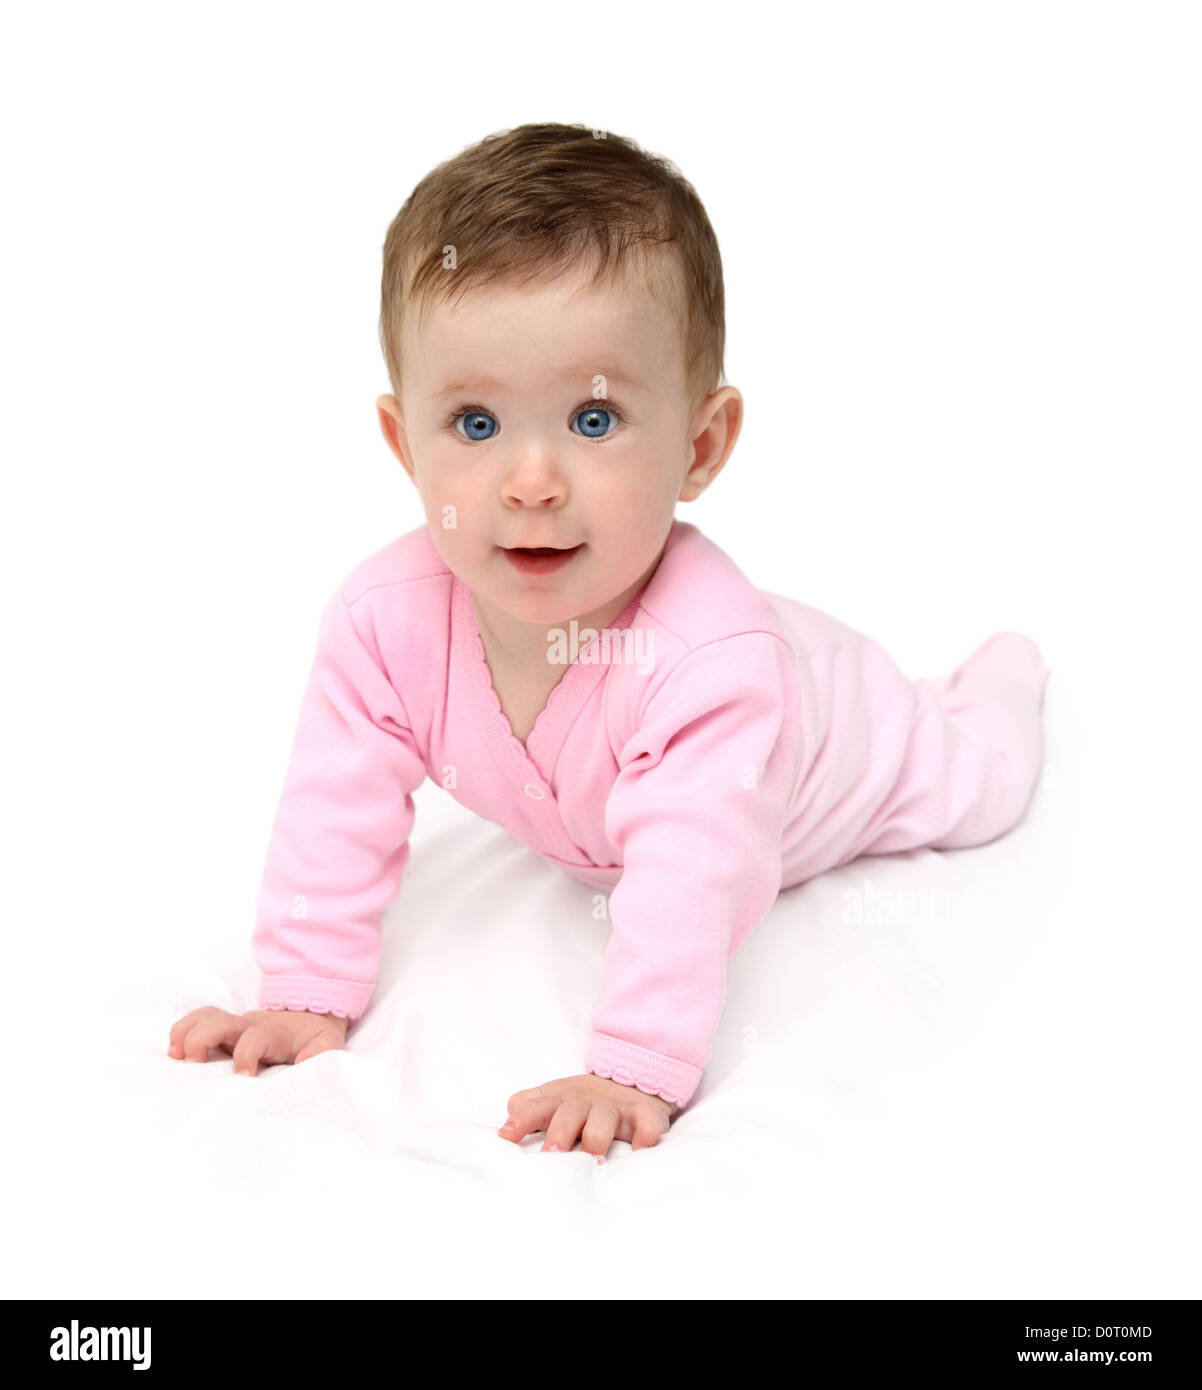 baby in pink on white sheet - Stock Image